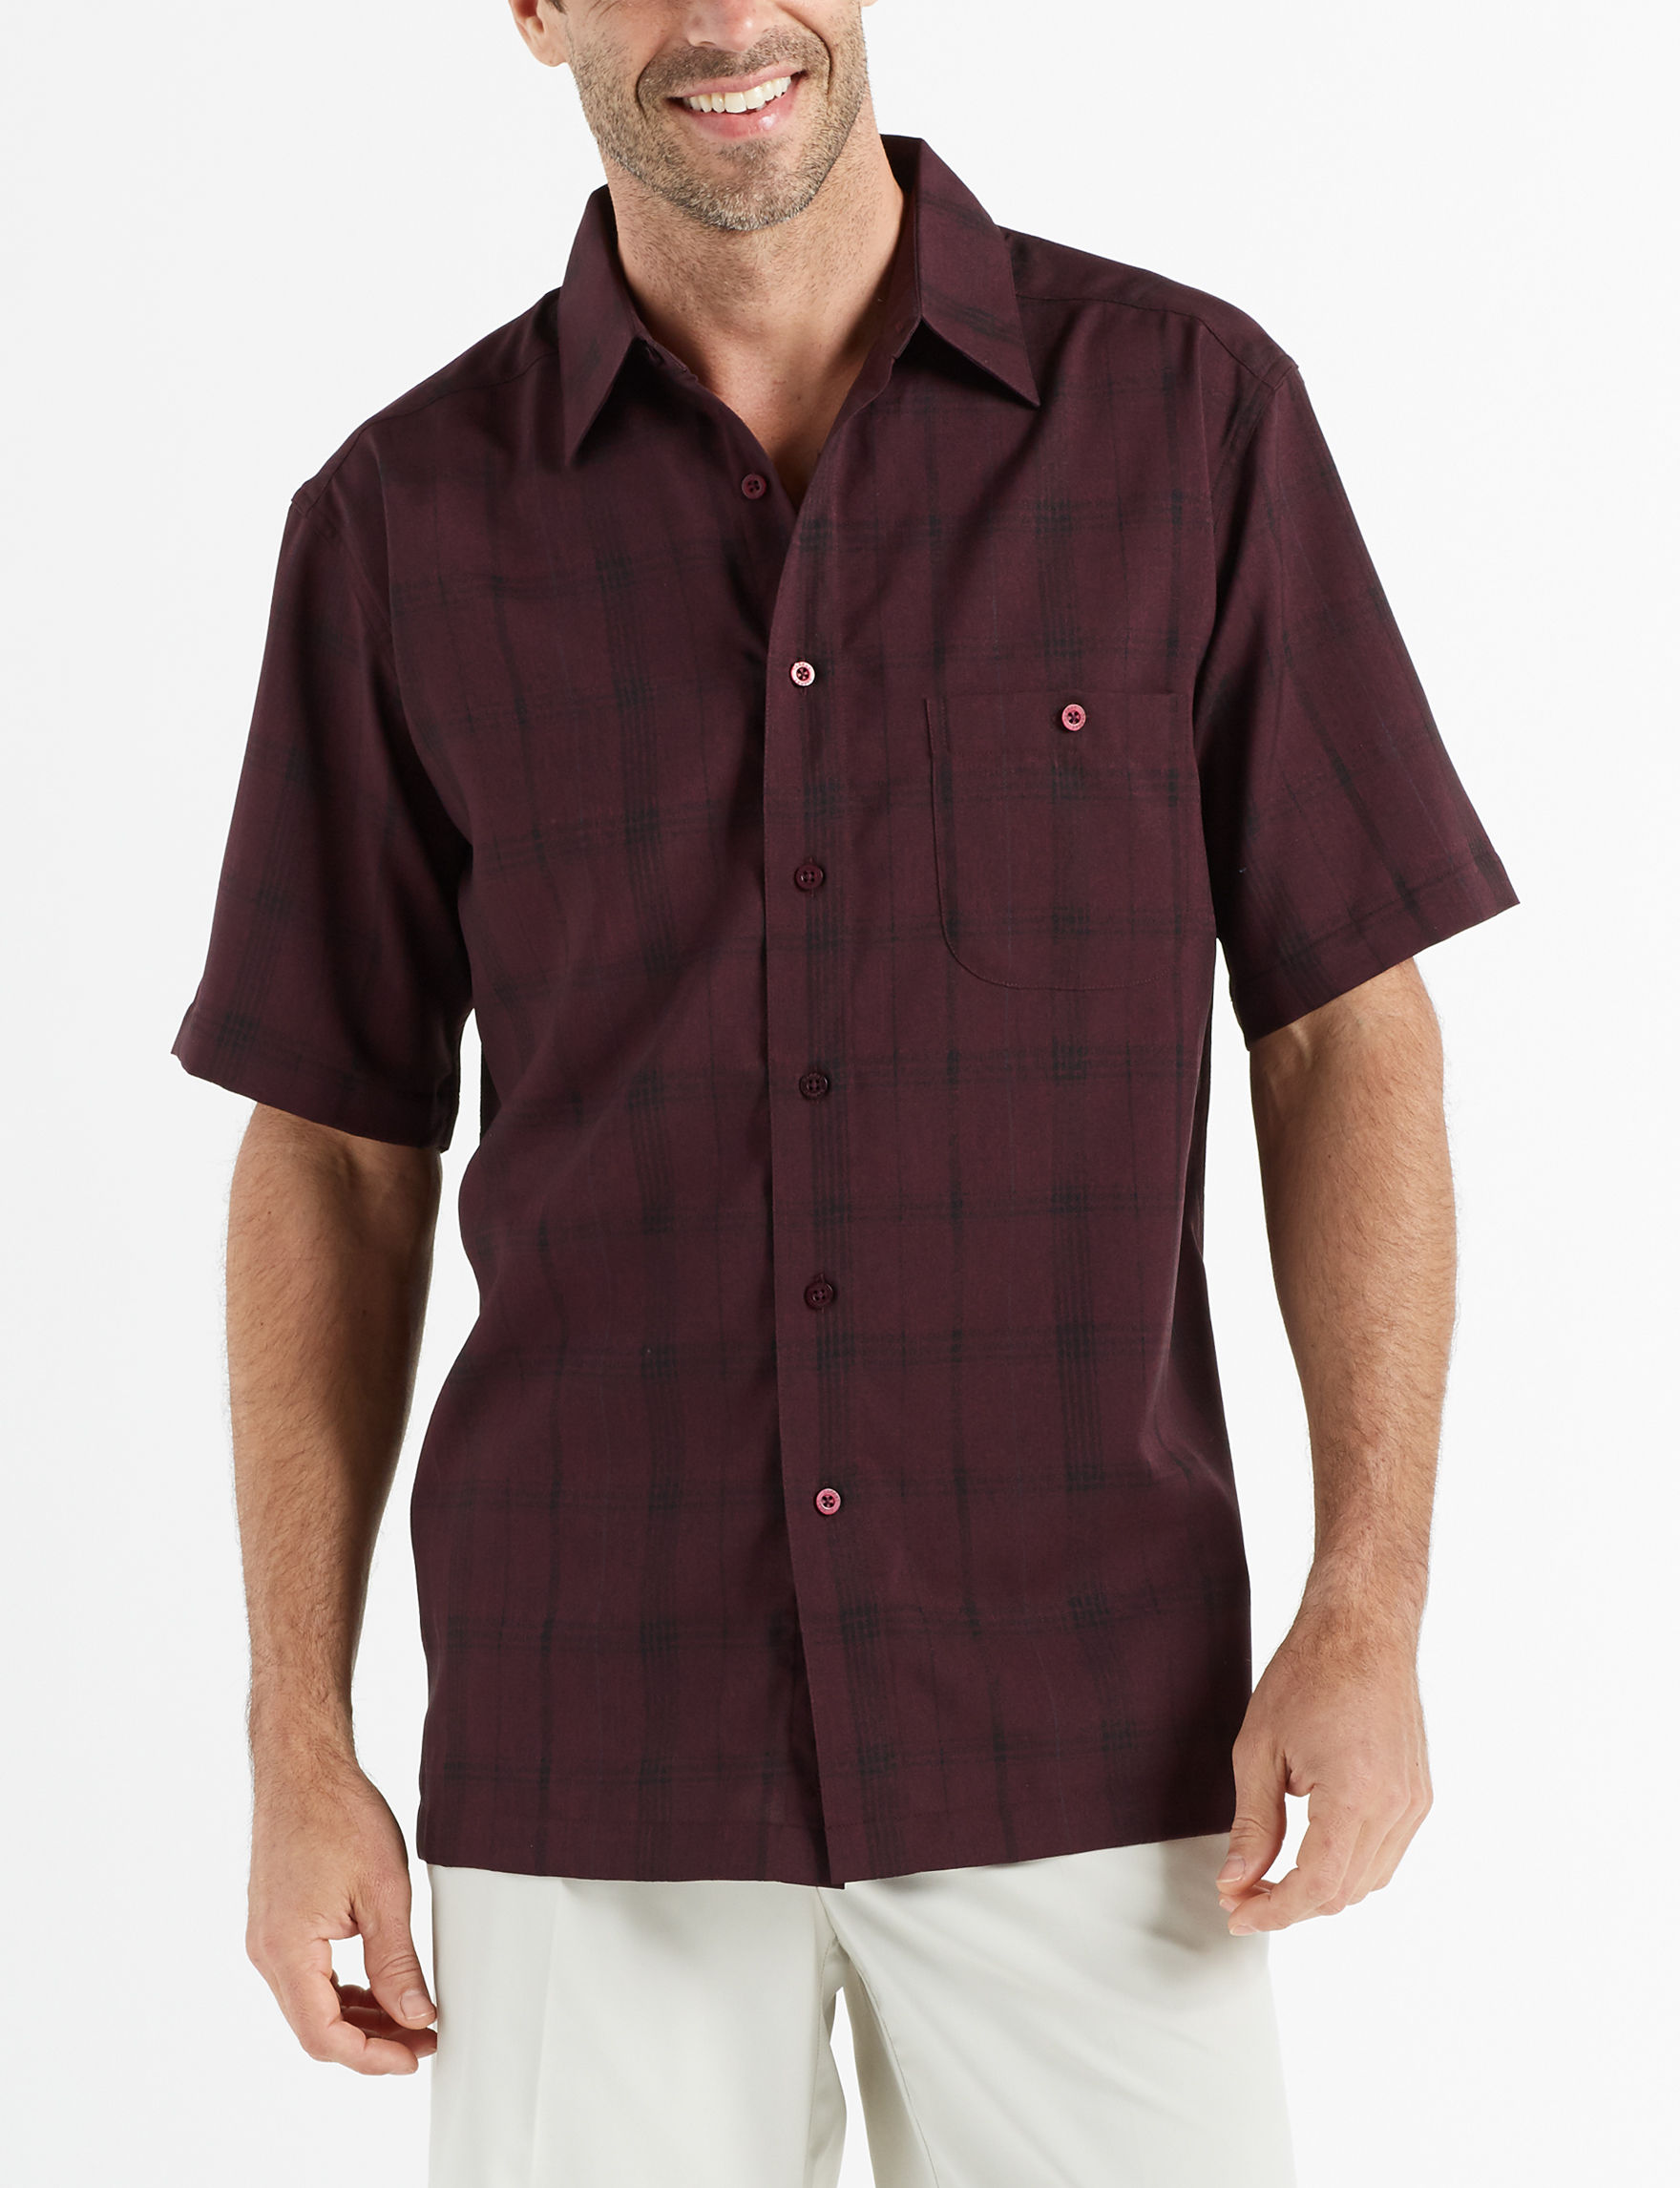 Haggar Burgundy Multi Casual Button Down Shirts